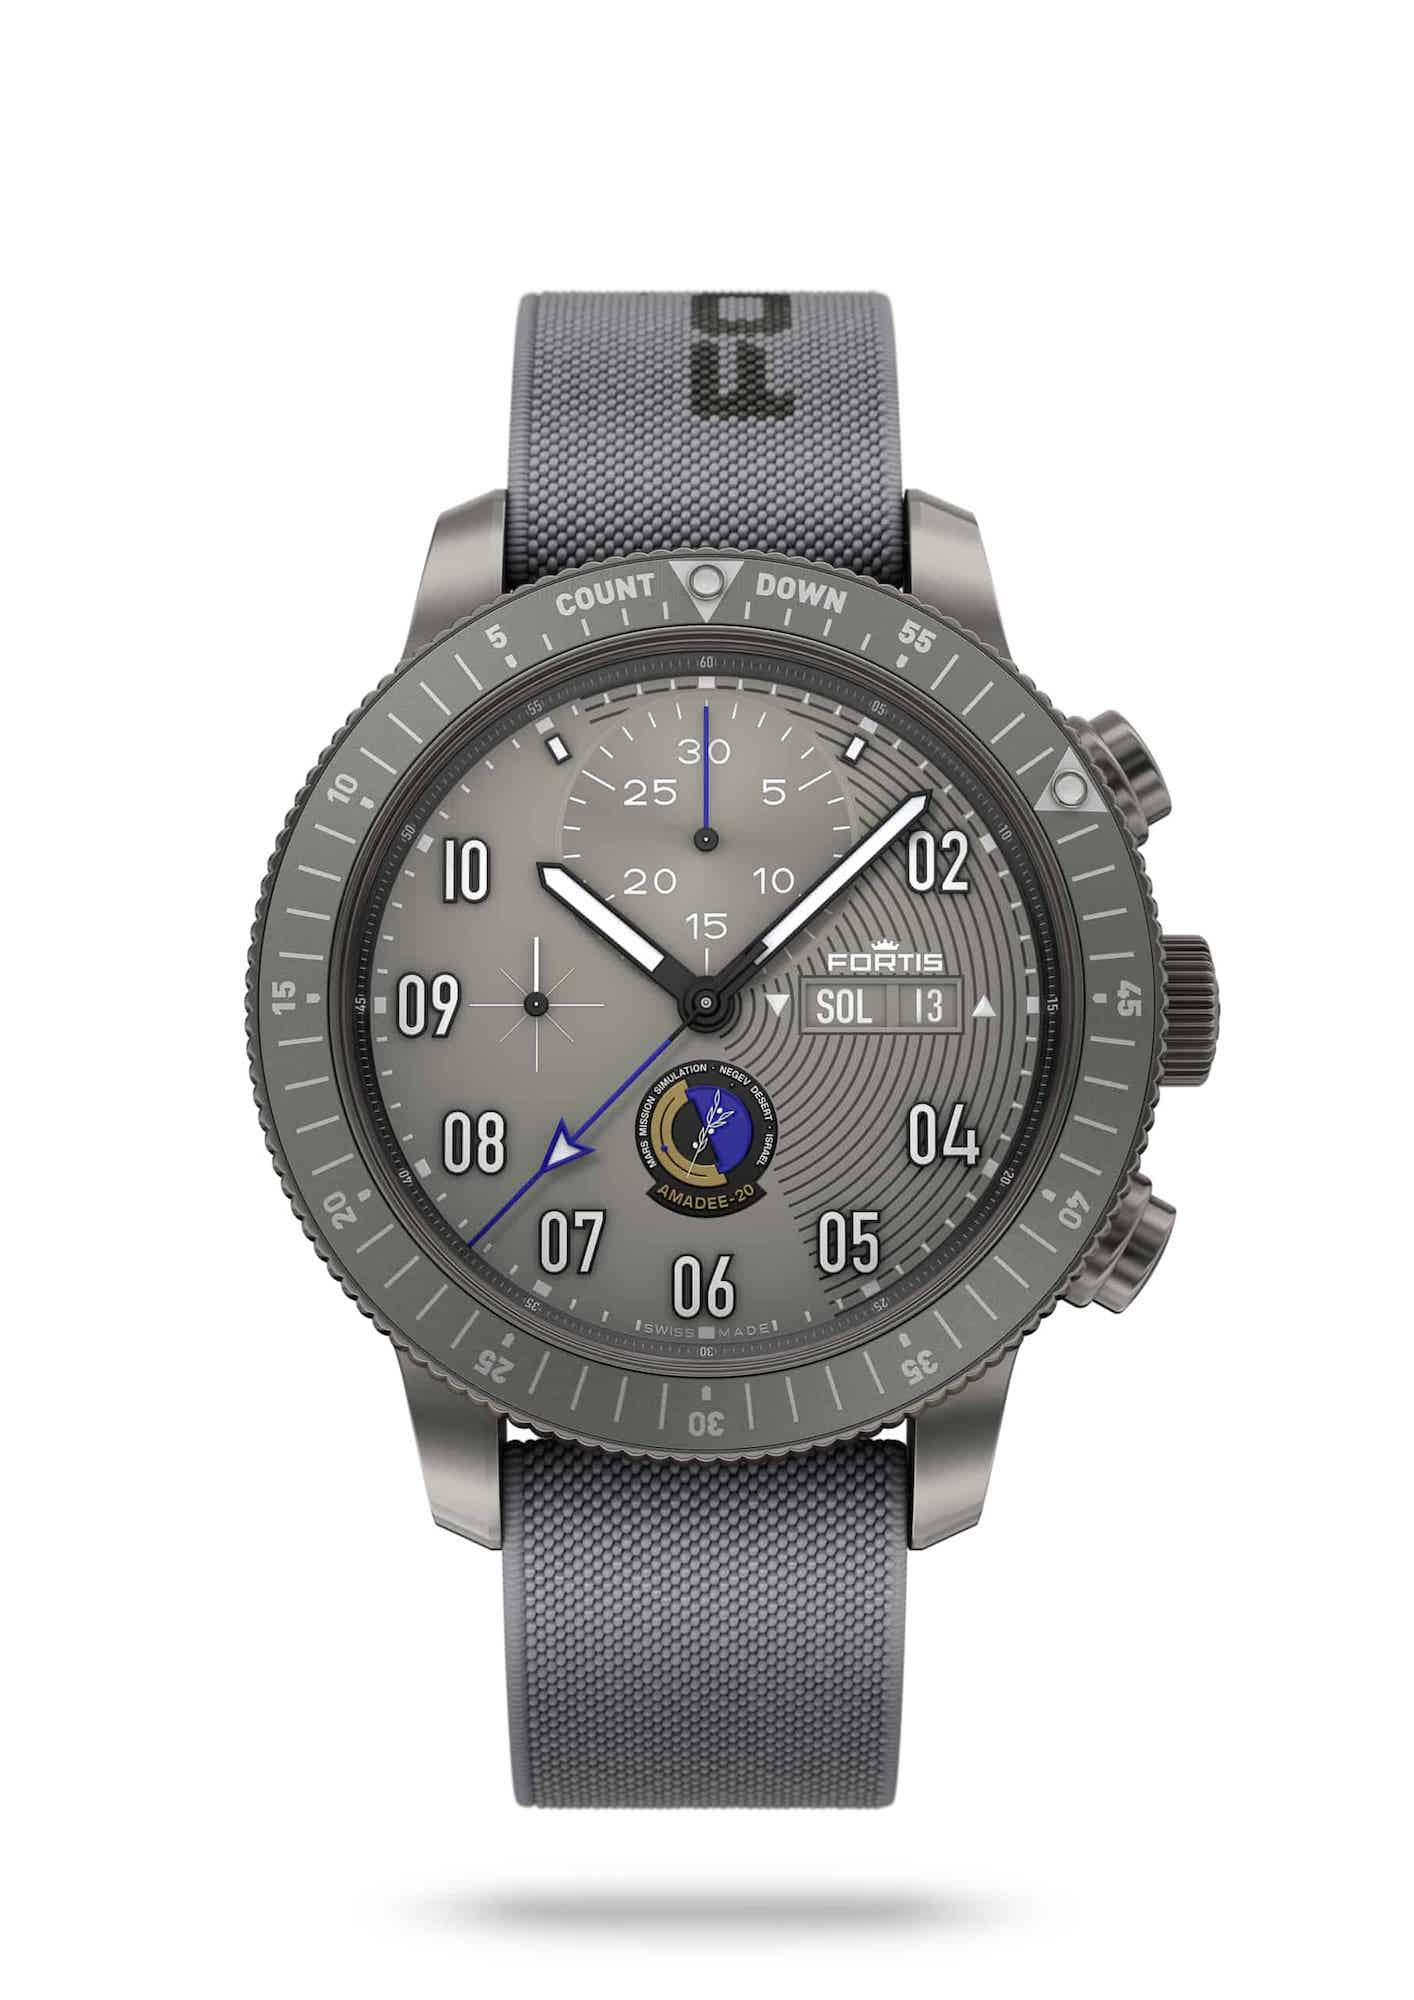 Fortis Official Cosmonauts Chronograph AMADEE-20 Frontal